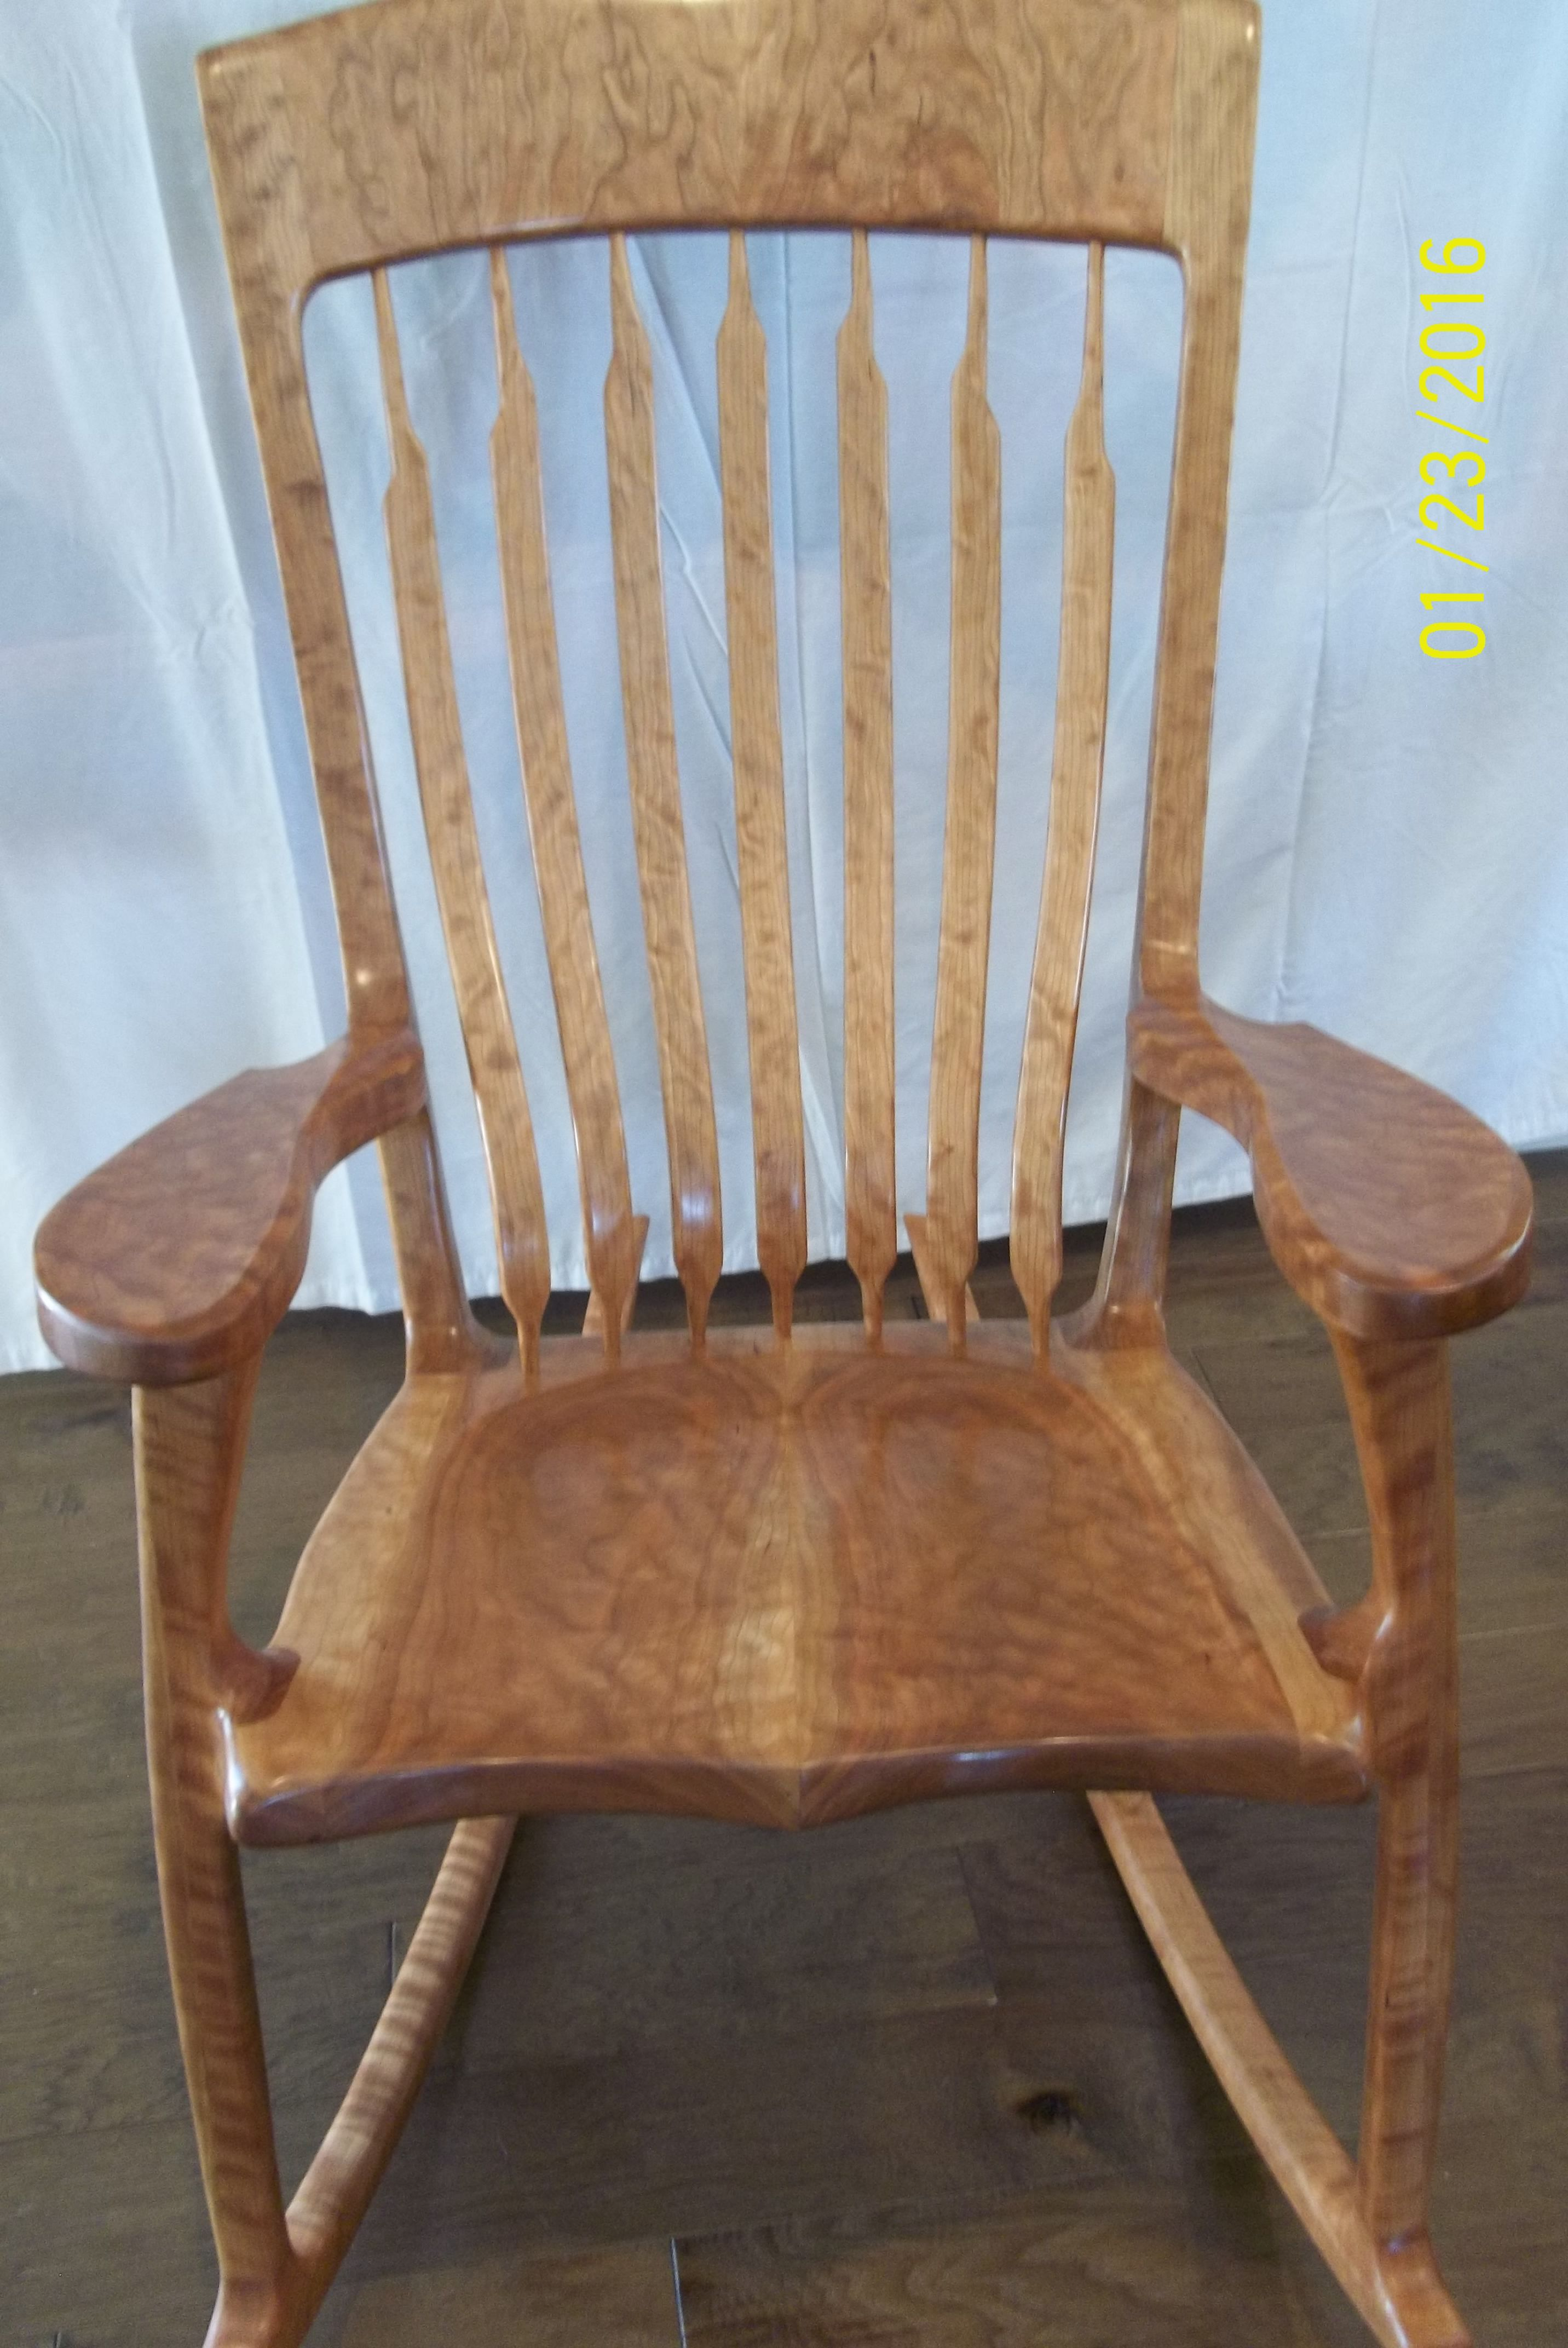 rocking chair fine woodworking shabby chic cushions hand crafter figured cherry made by kim l slater